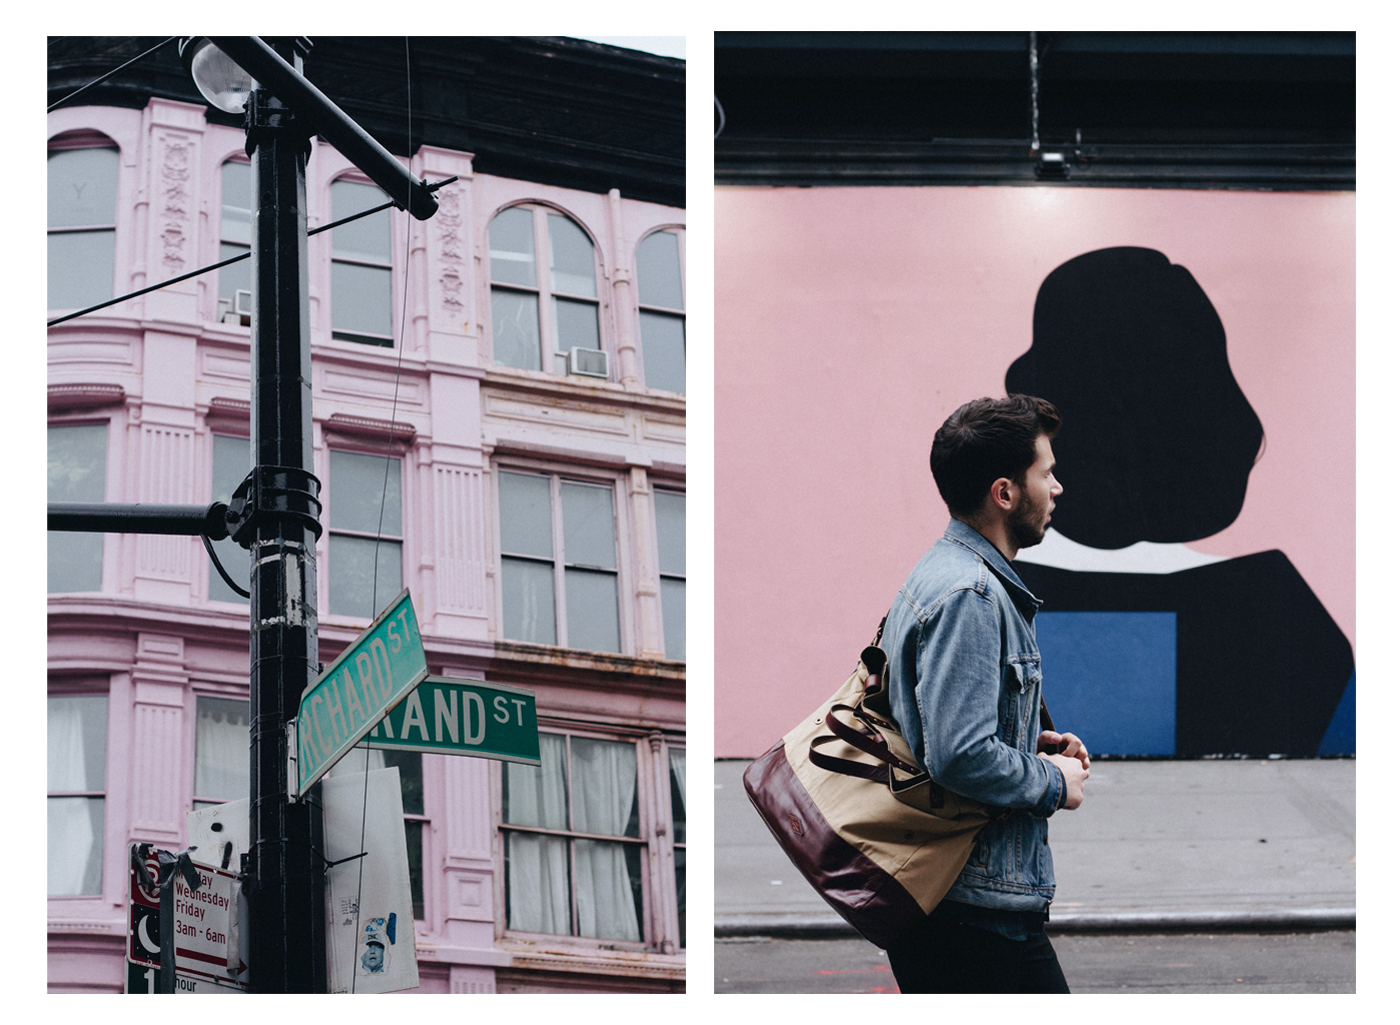 Wandering new york city with some friends and pink buildings